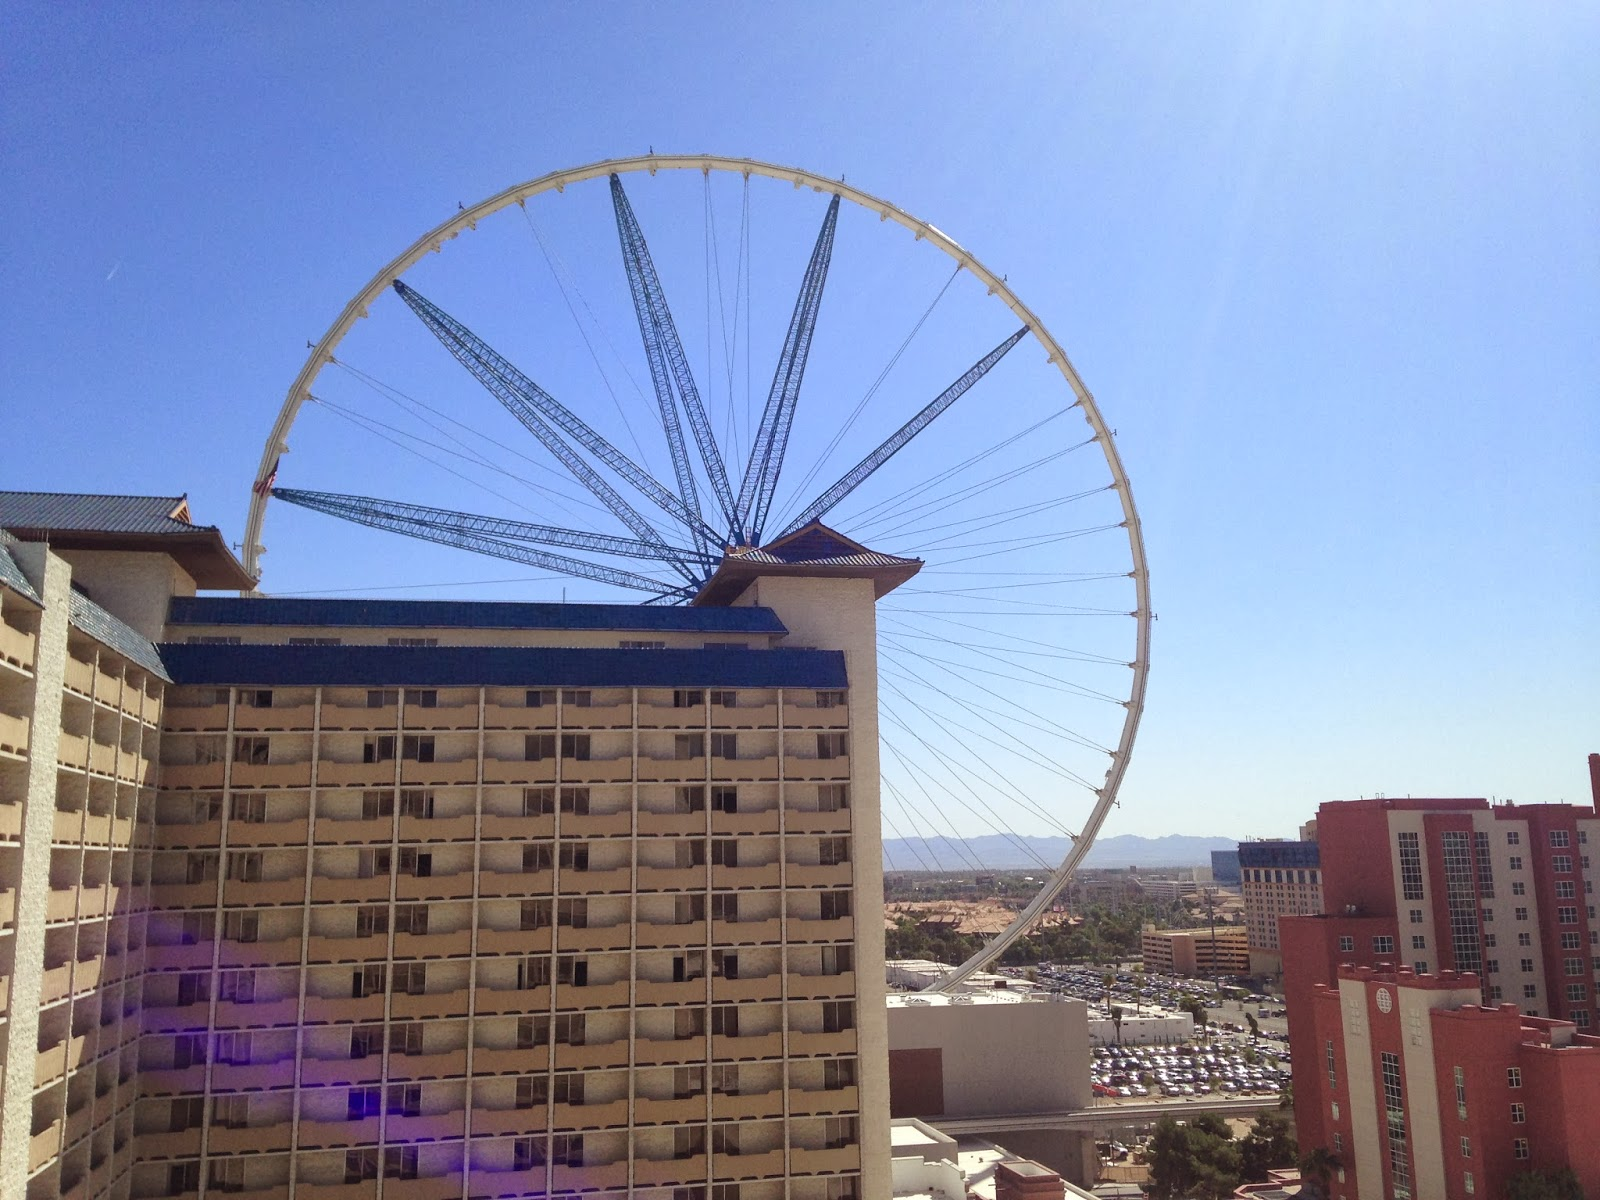 ferris wheel in vegas